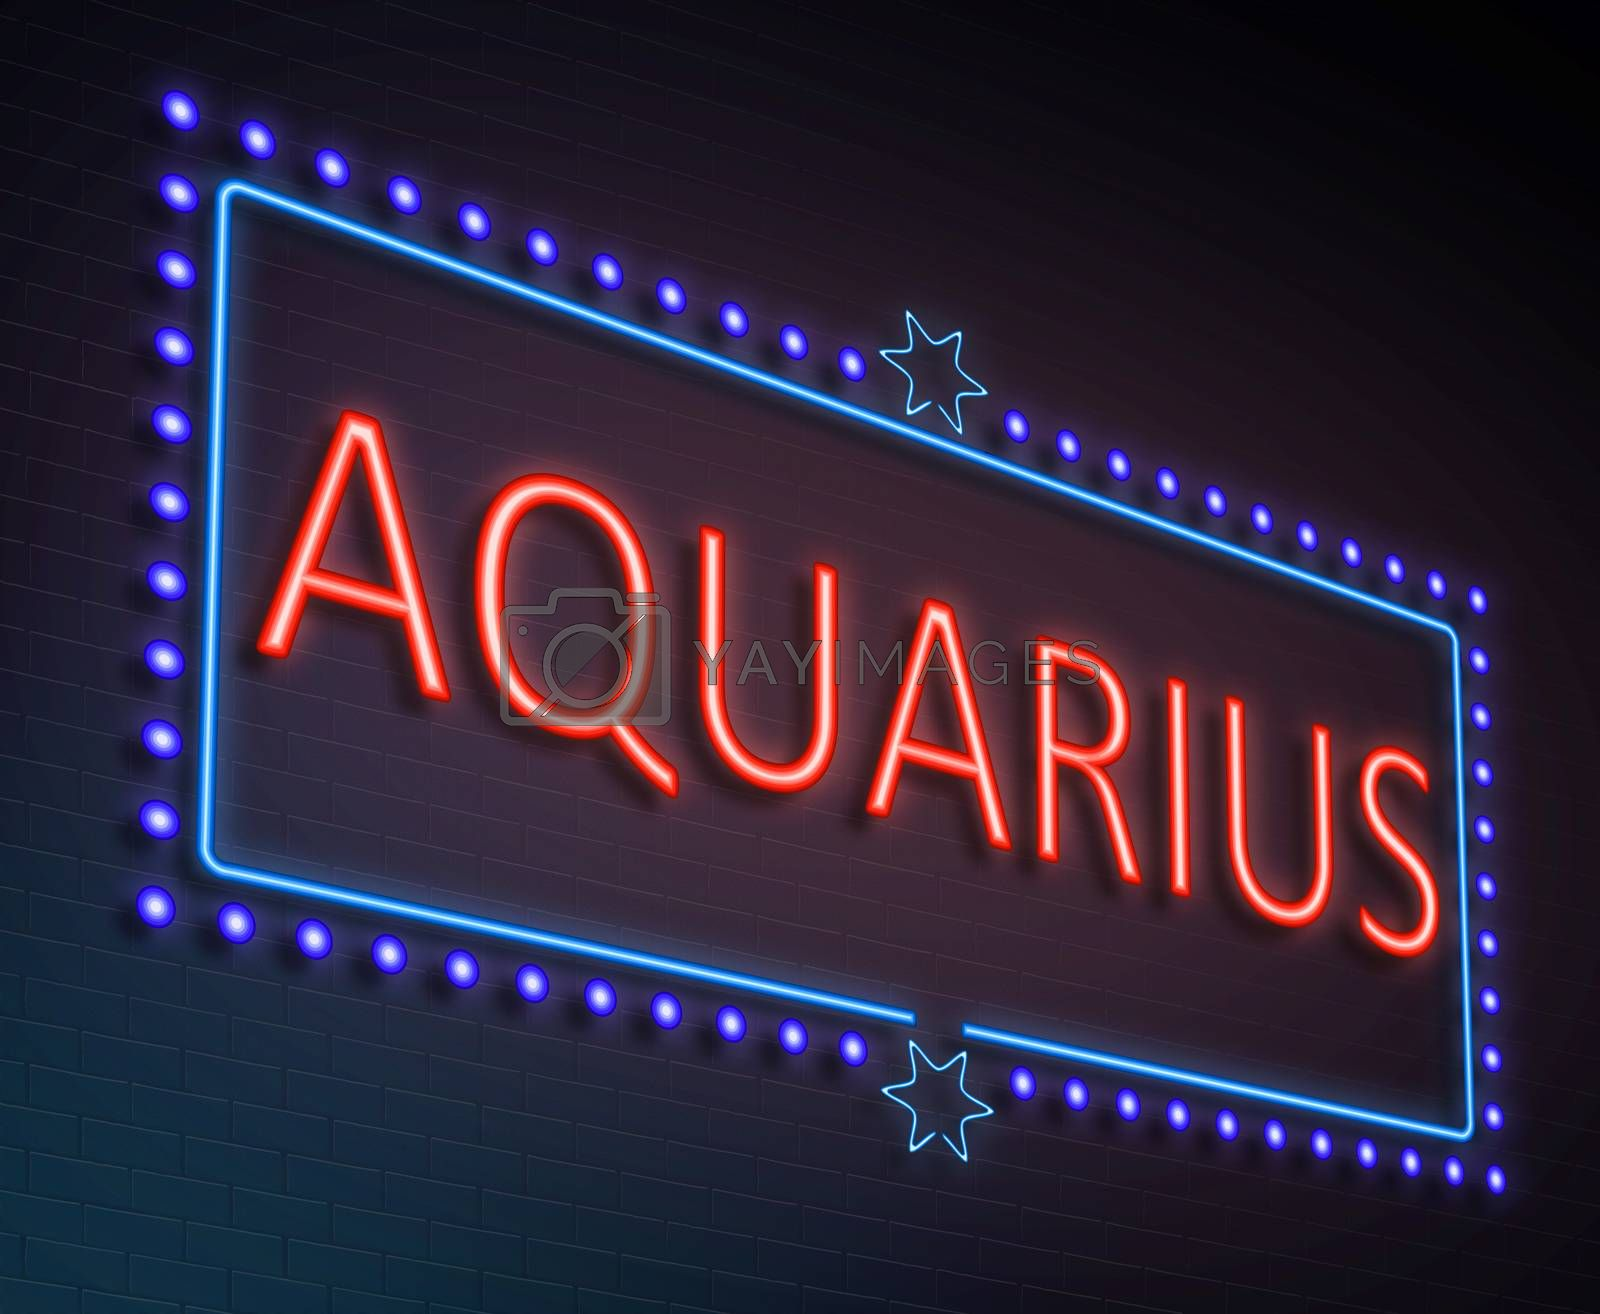 Illustration depicting an illuminated neon sign with an aquarius concept.